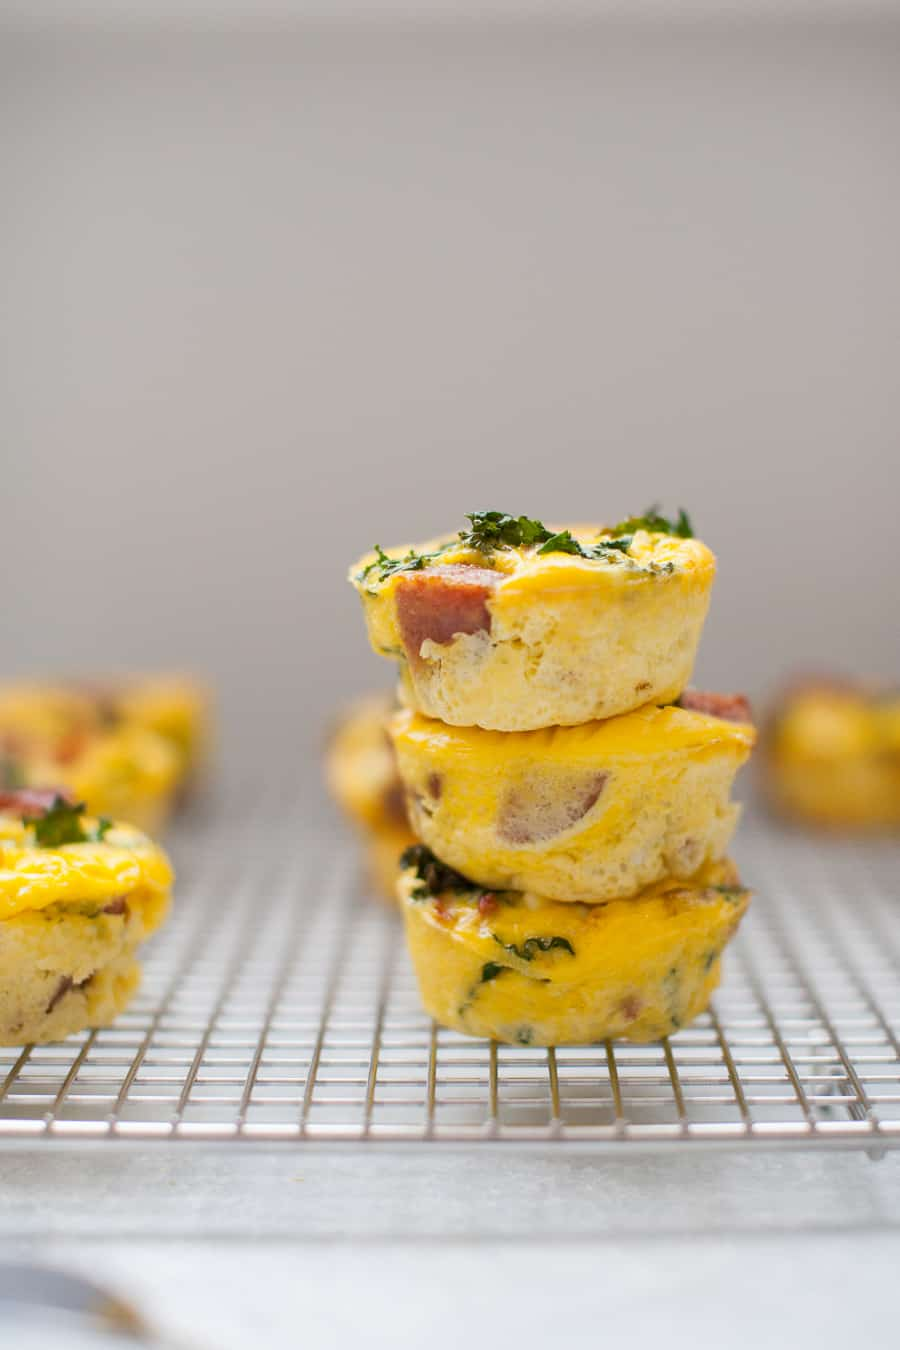 Make Ahead Egg Muffins are a perfect solution for making breakfast ahead of time for the week, to take to work or for brunch! Made with smoked sausage, kale, sundried tomatoes and feta, these egg muffins are small but packed with flavor.